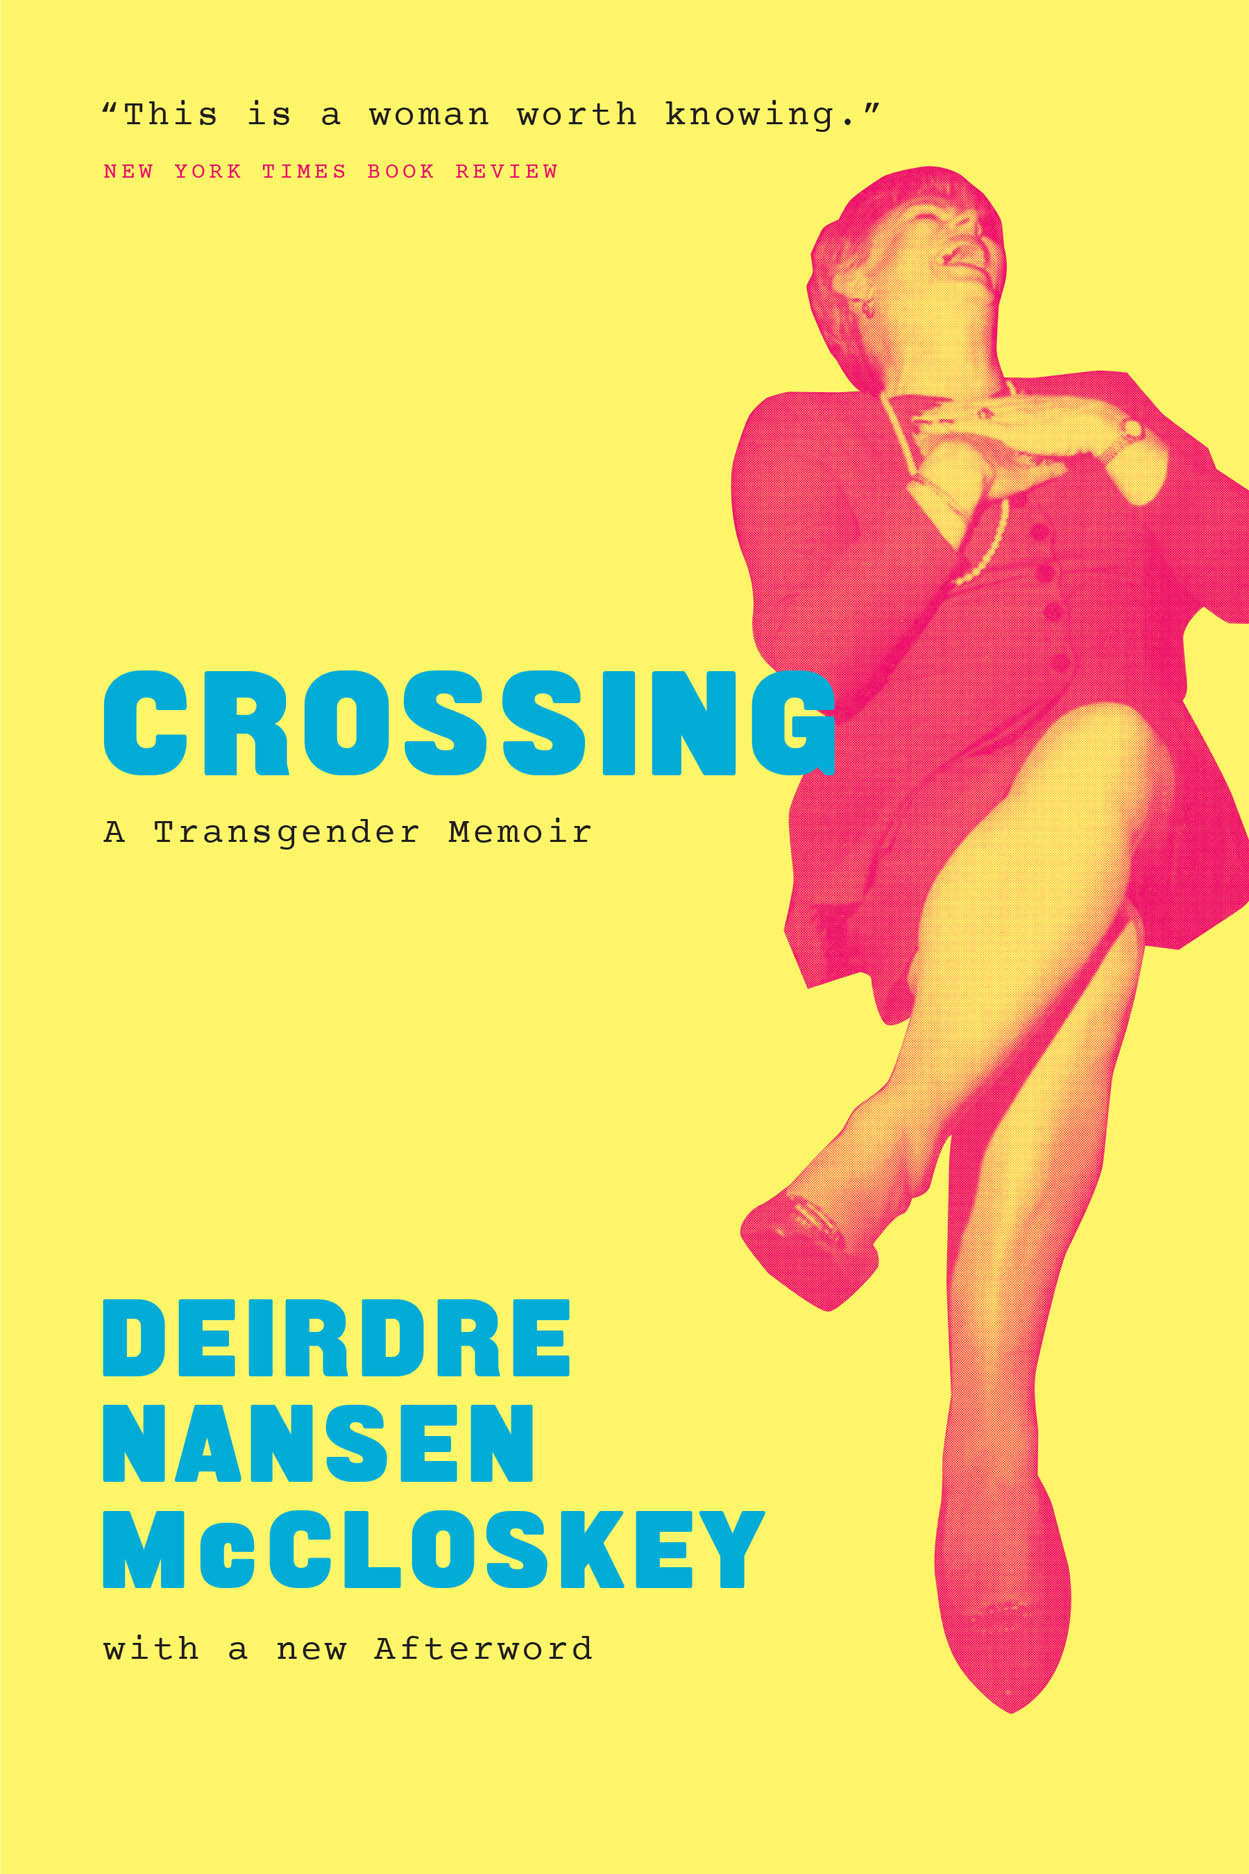 Crossing: A Transgender Memoir